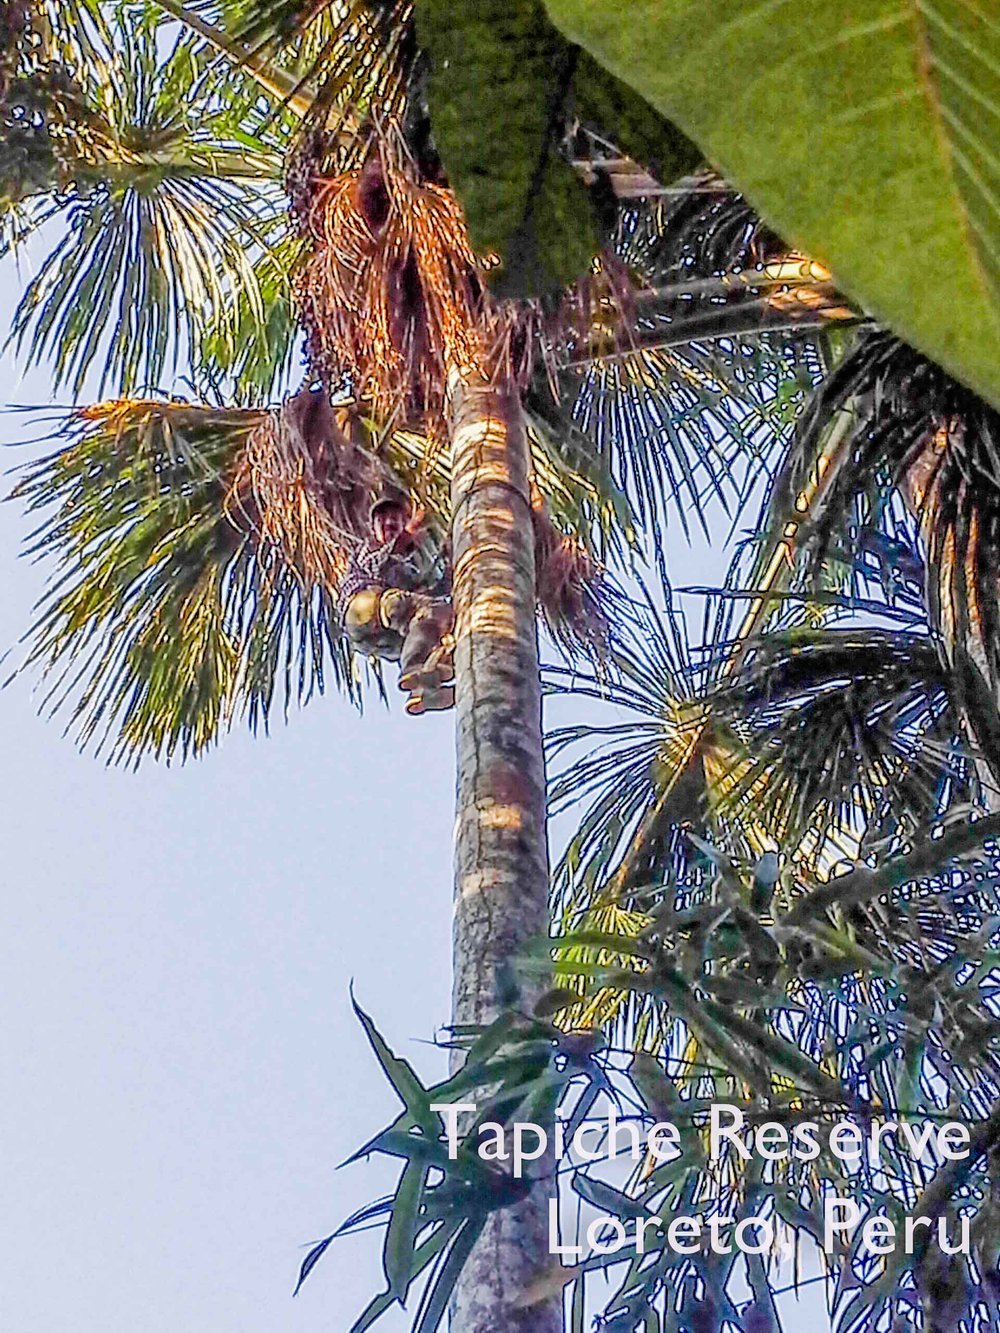 Tapiche-Amazon-Jungle-Tour-Peru-visitor-climbs-aguaje-buriti-palm-tree